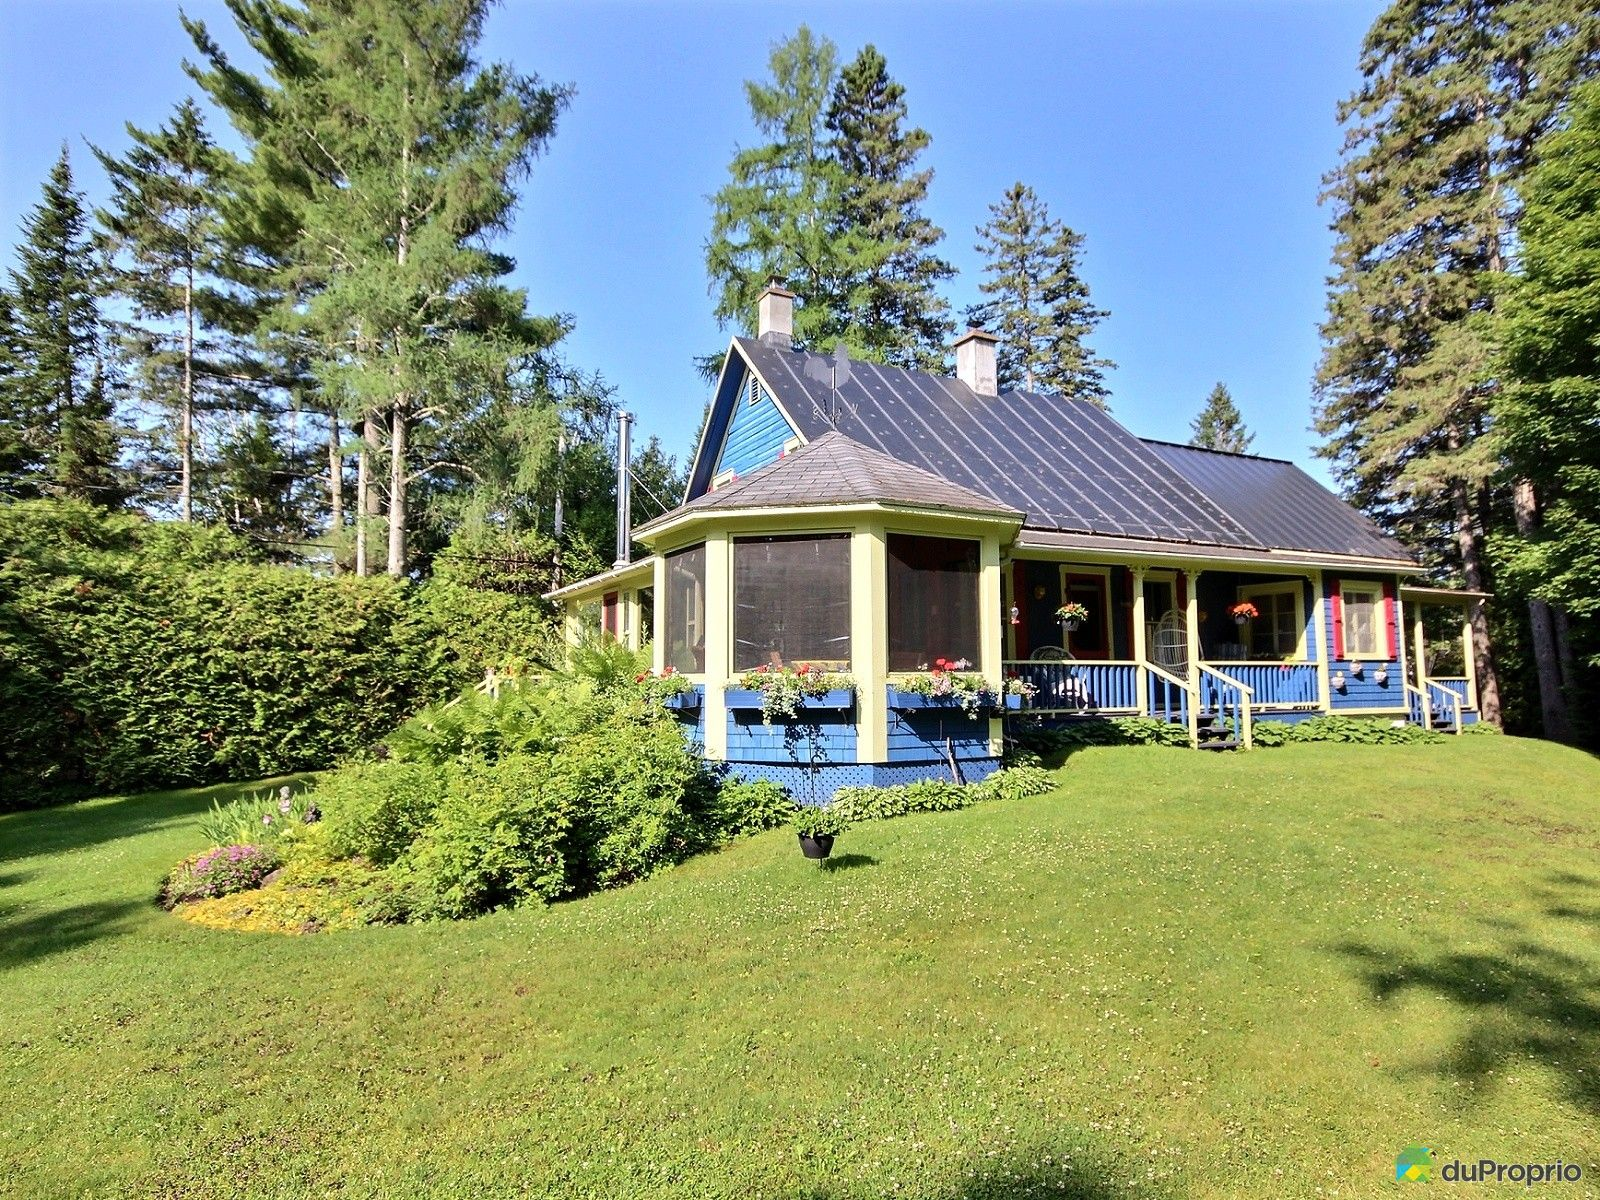 Maison a vendre lac morin quebec proprietes etangs a for Acheter maison montreal quebec